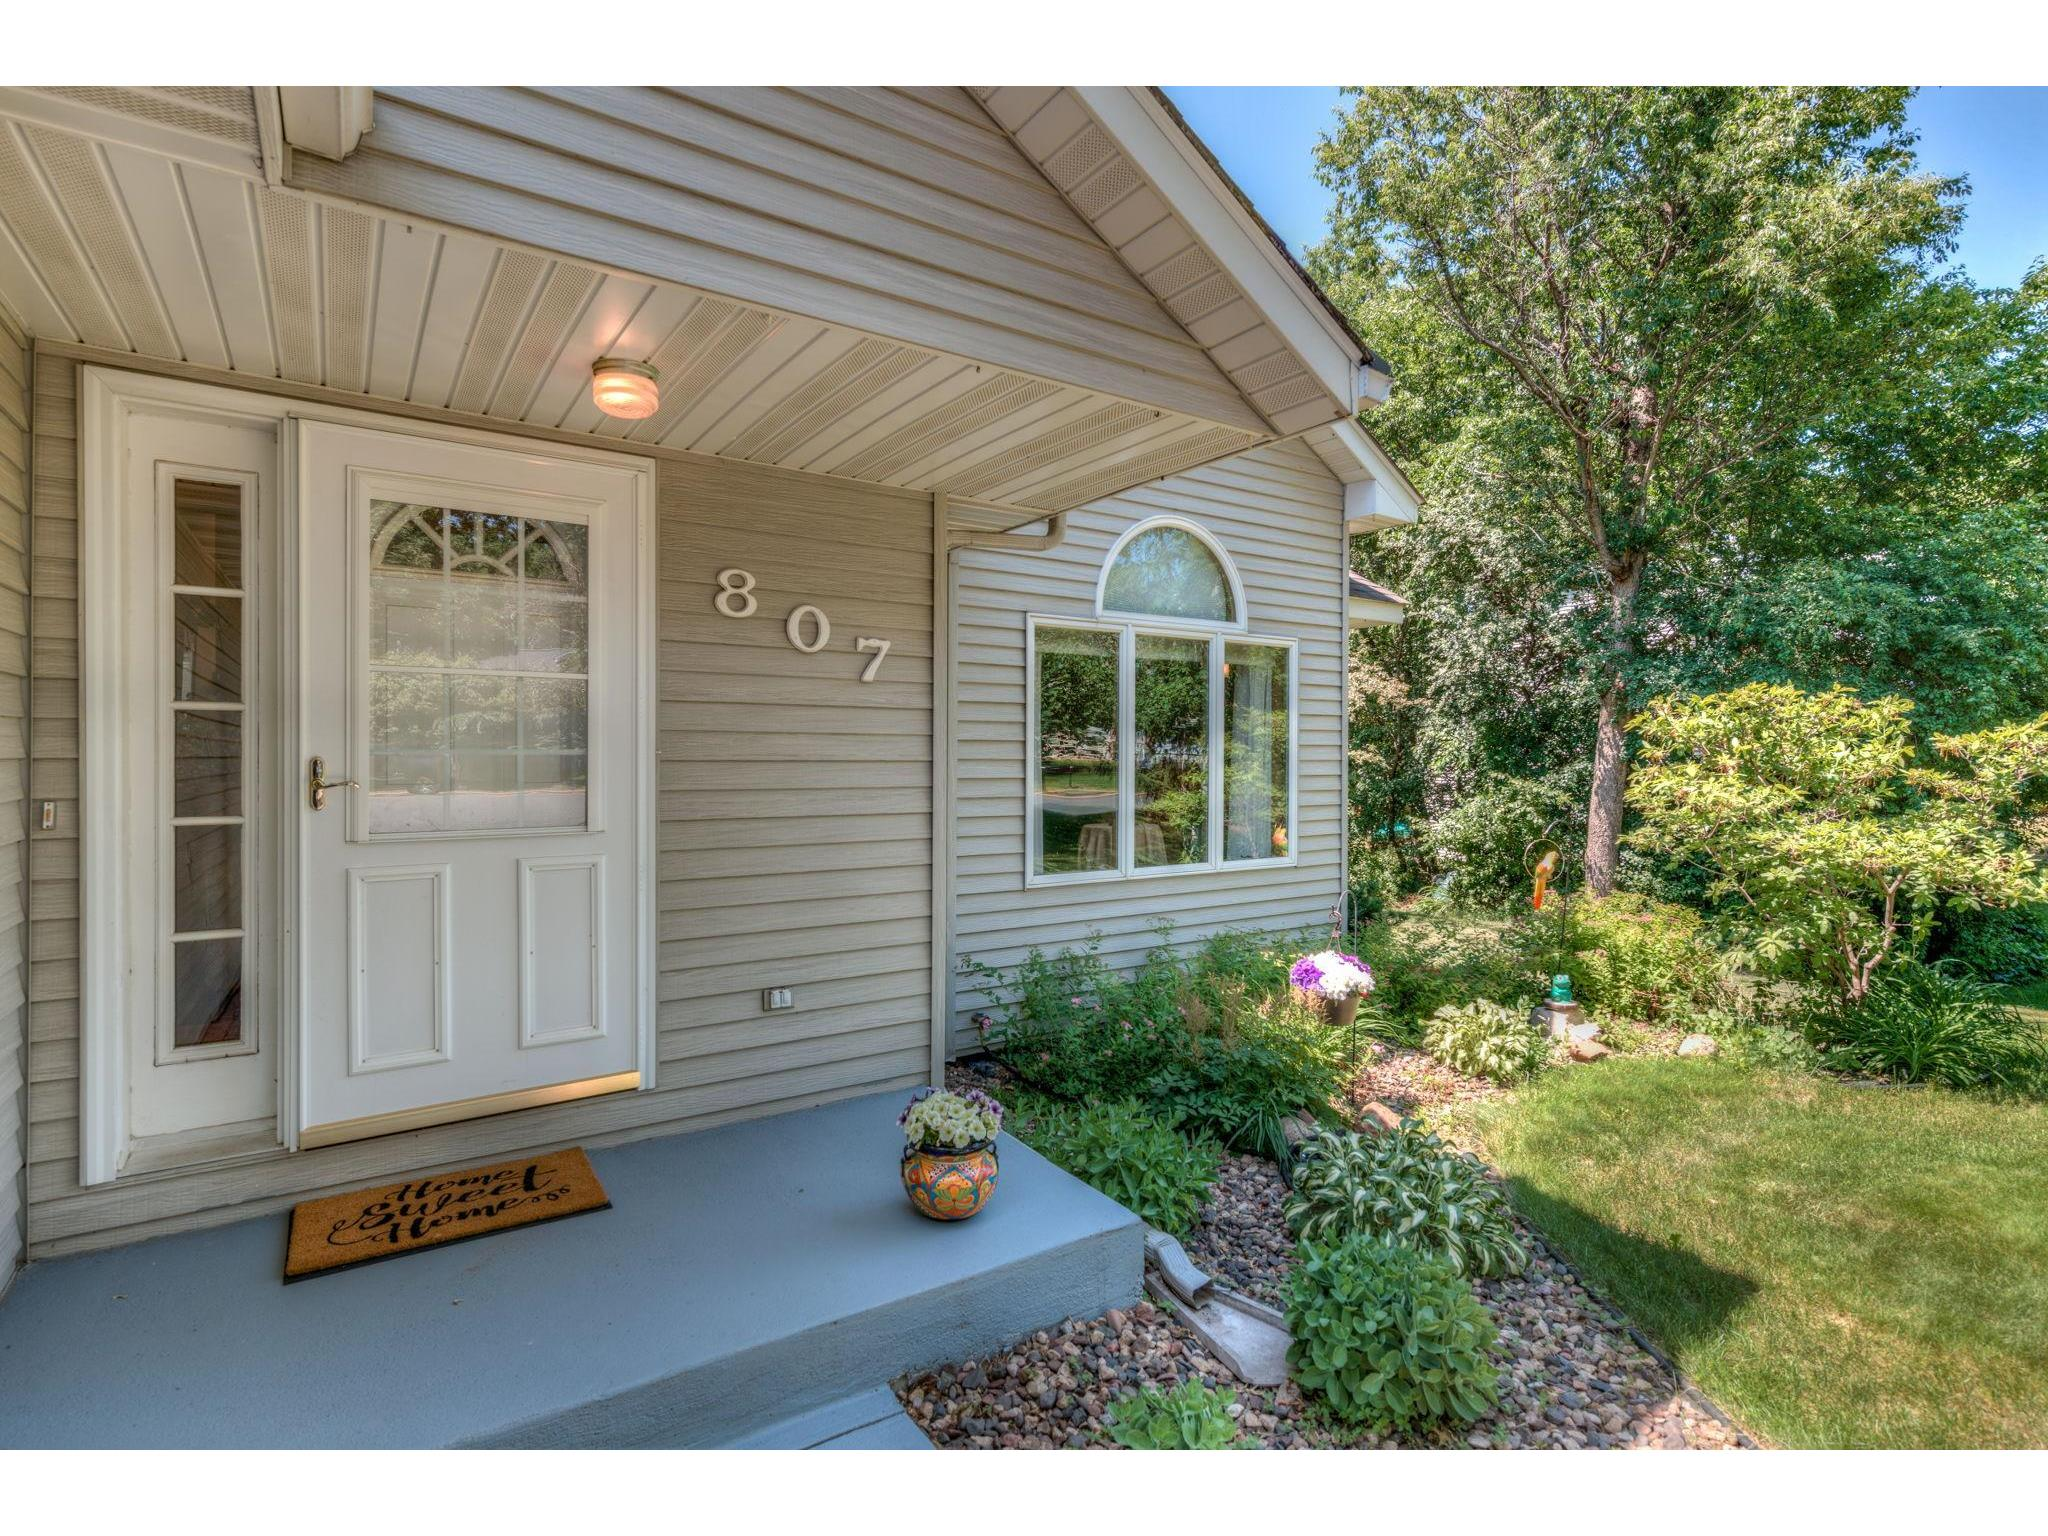 807 Summit Lane N, North Hudson, WI 54016 | MLS: 5609460 ...